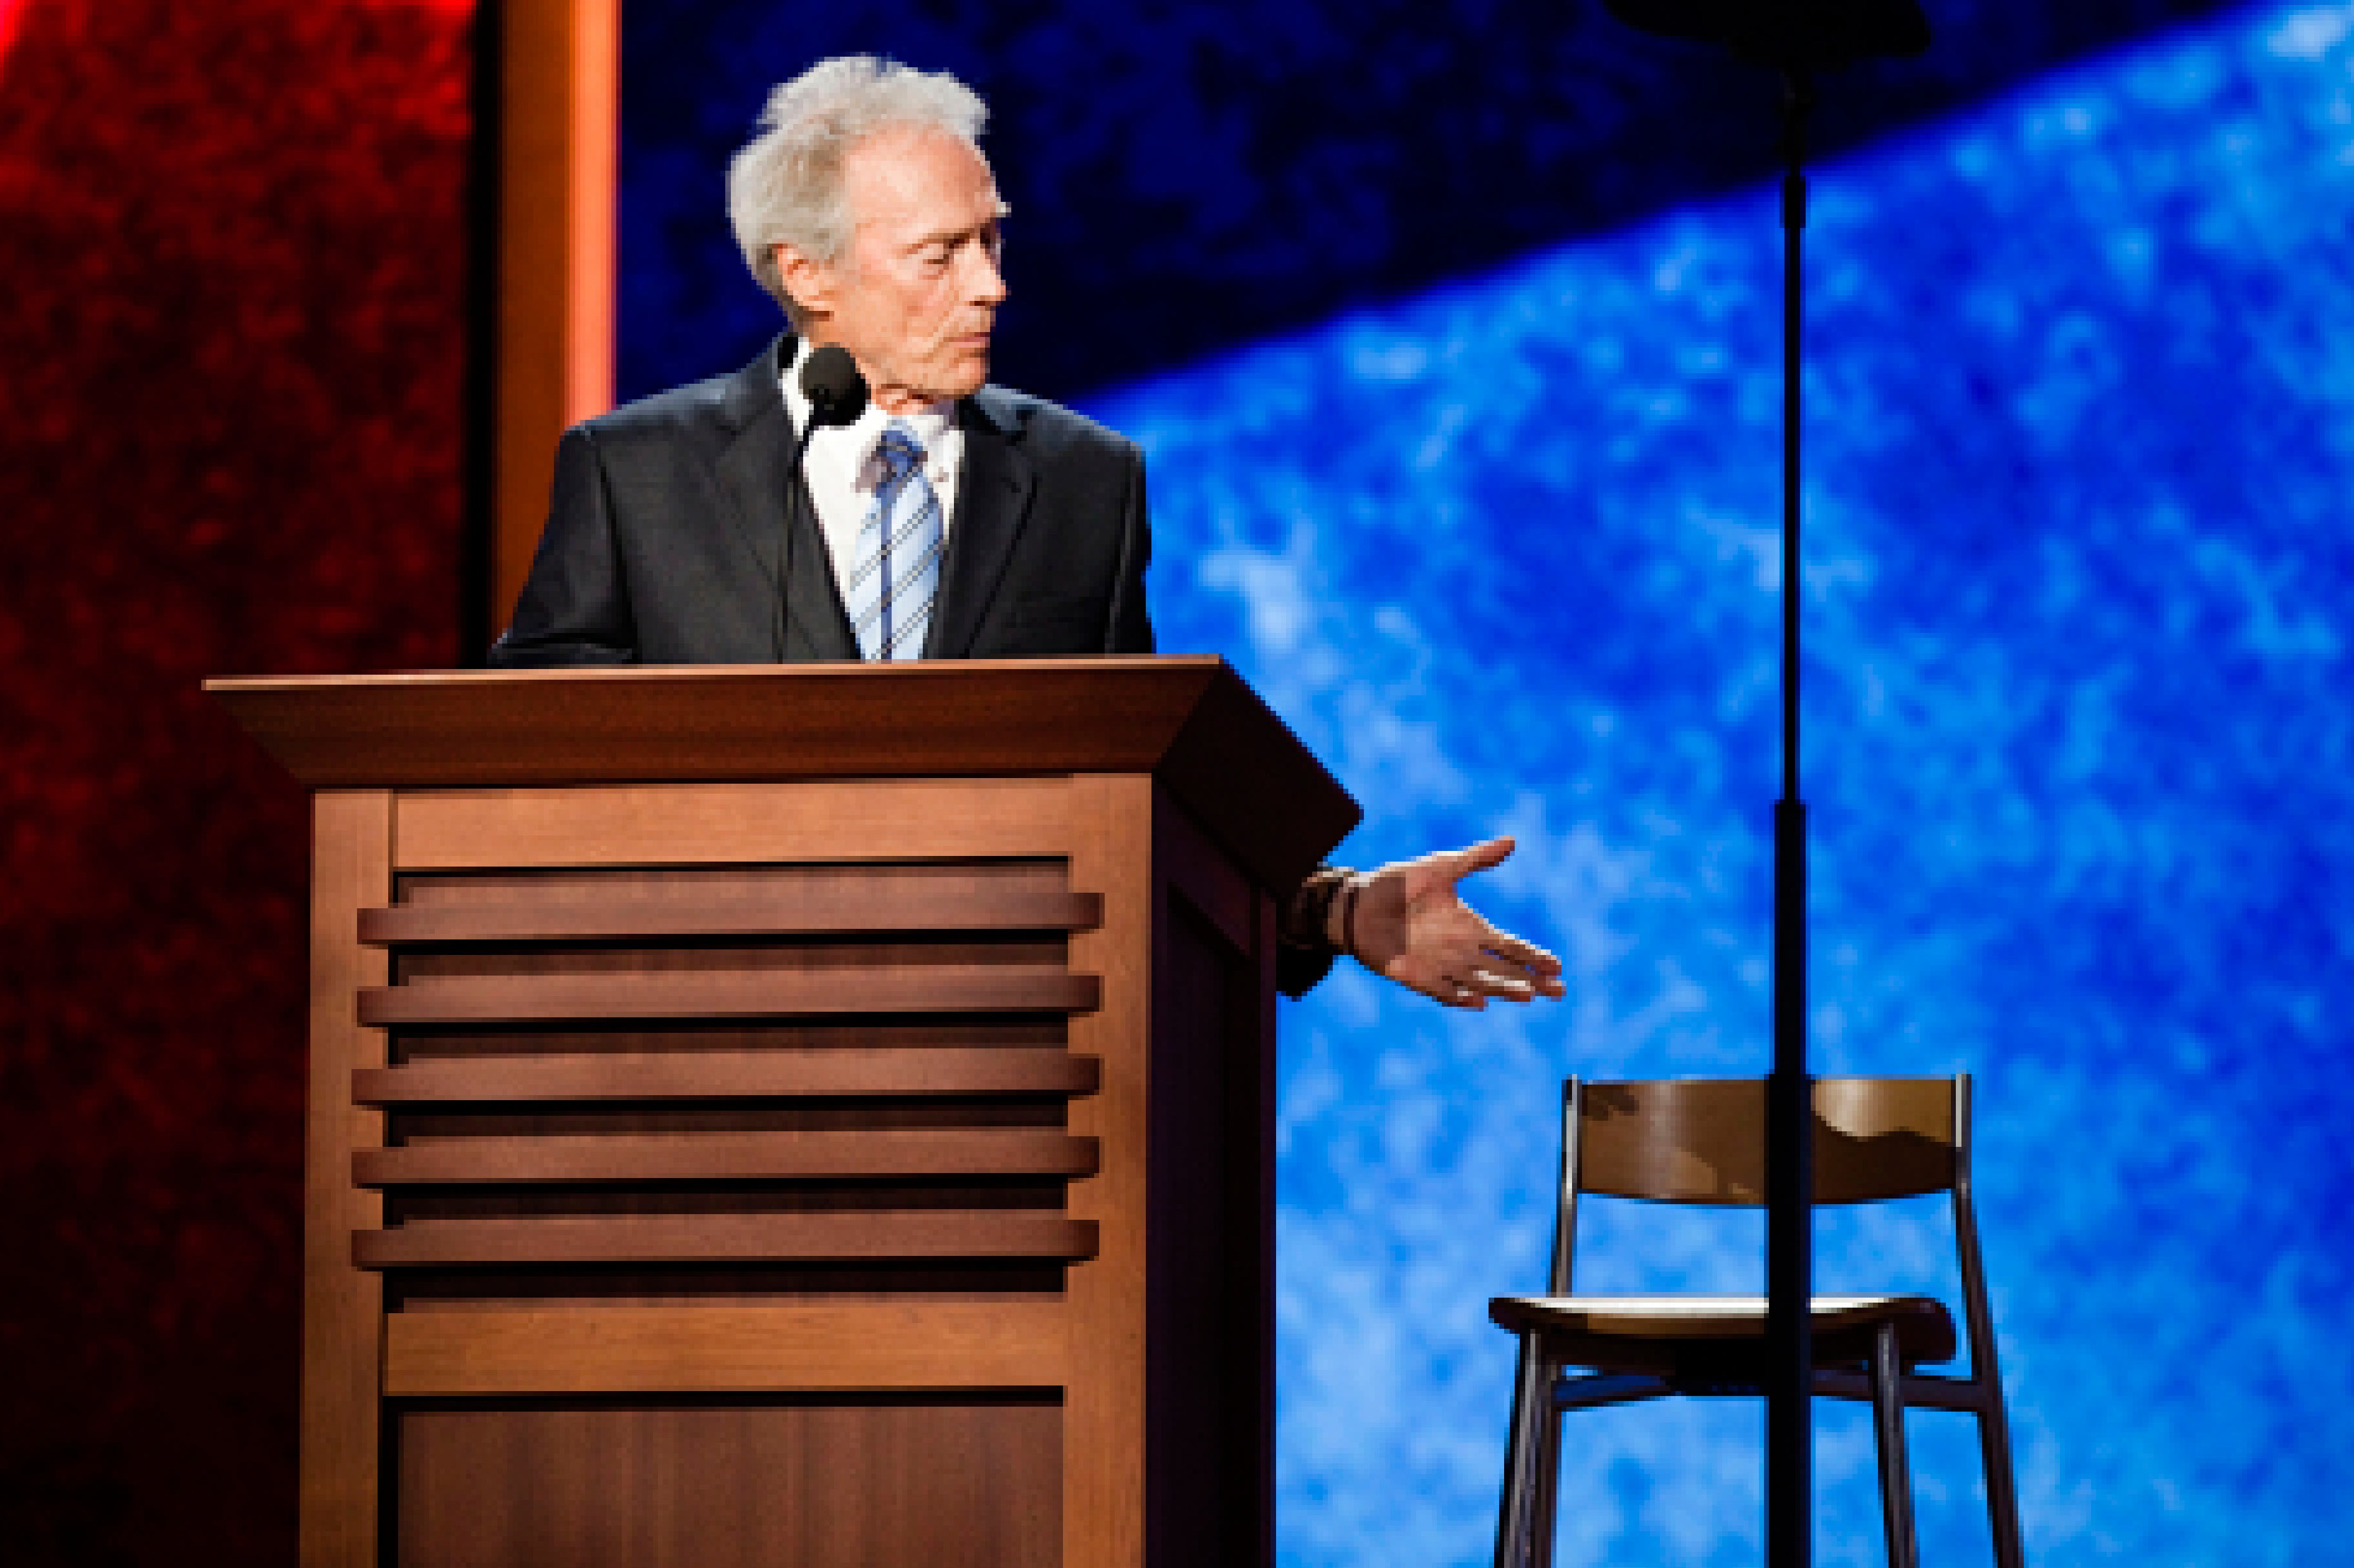 Clint Eastwood & the empty chair